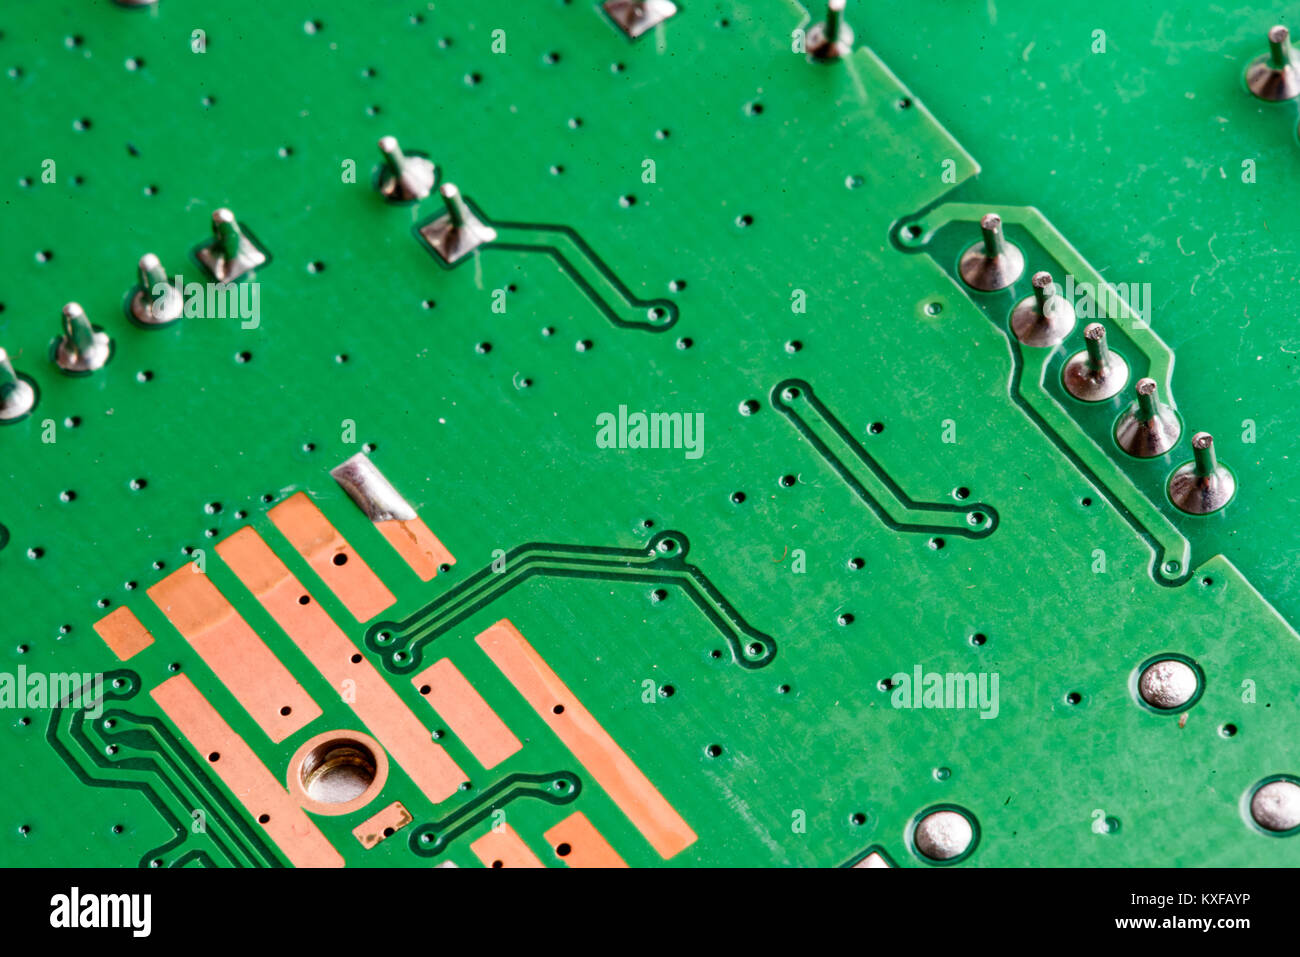 Transistors Circuit Board Elements Electronic Stock Photos With Pcb Printed In Macro Close Up Circuitry And Electric Hardware